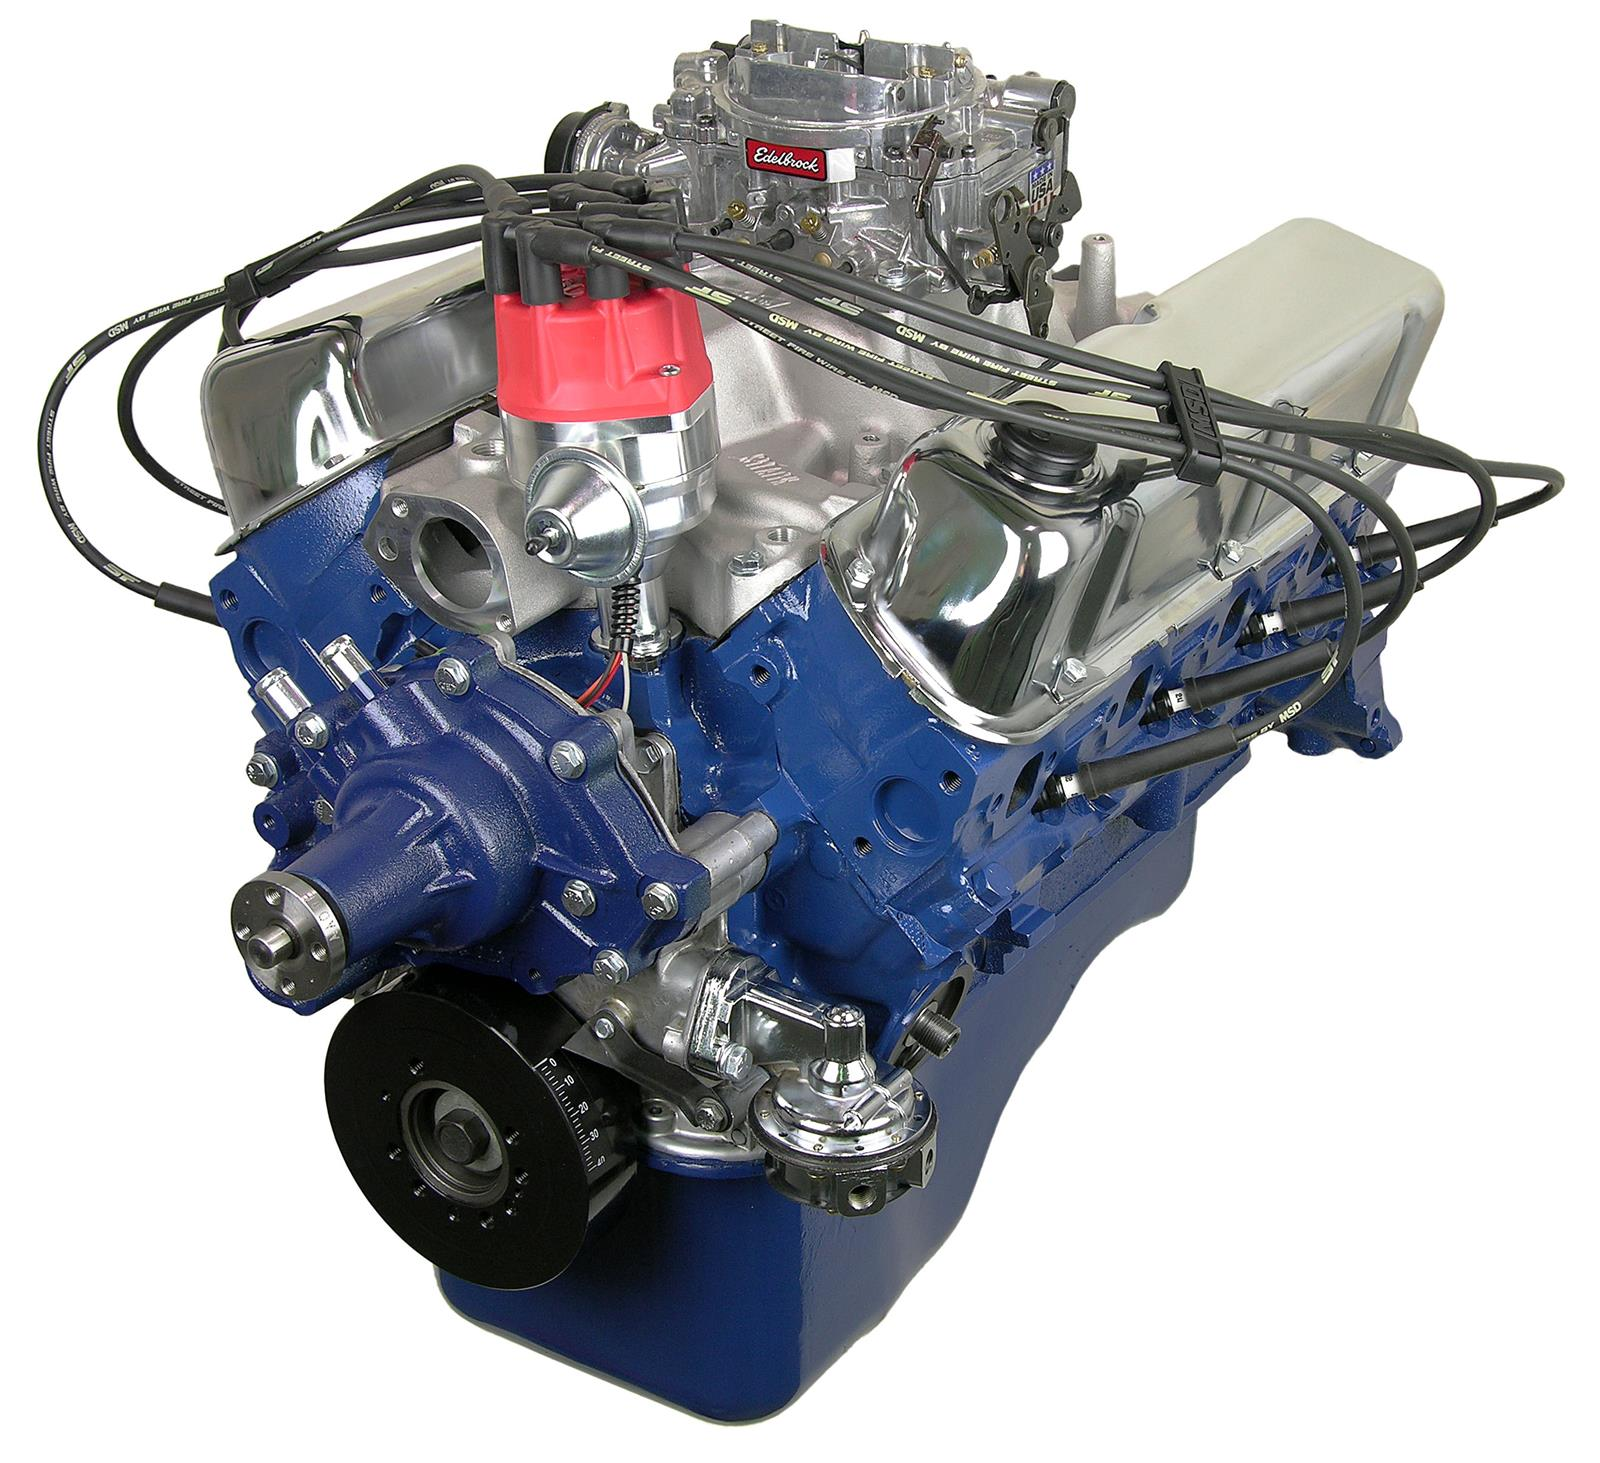 remanufactured website late night ford engine applications rover programming web land based engines landrover